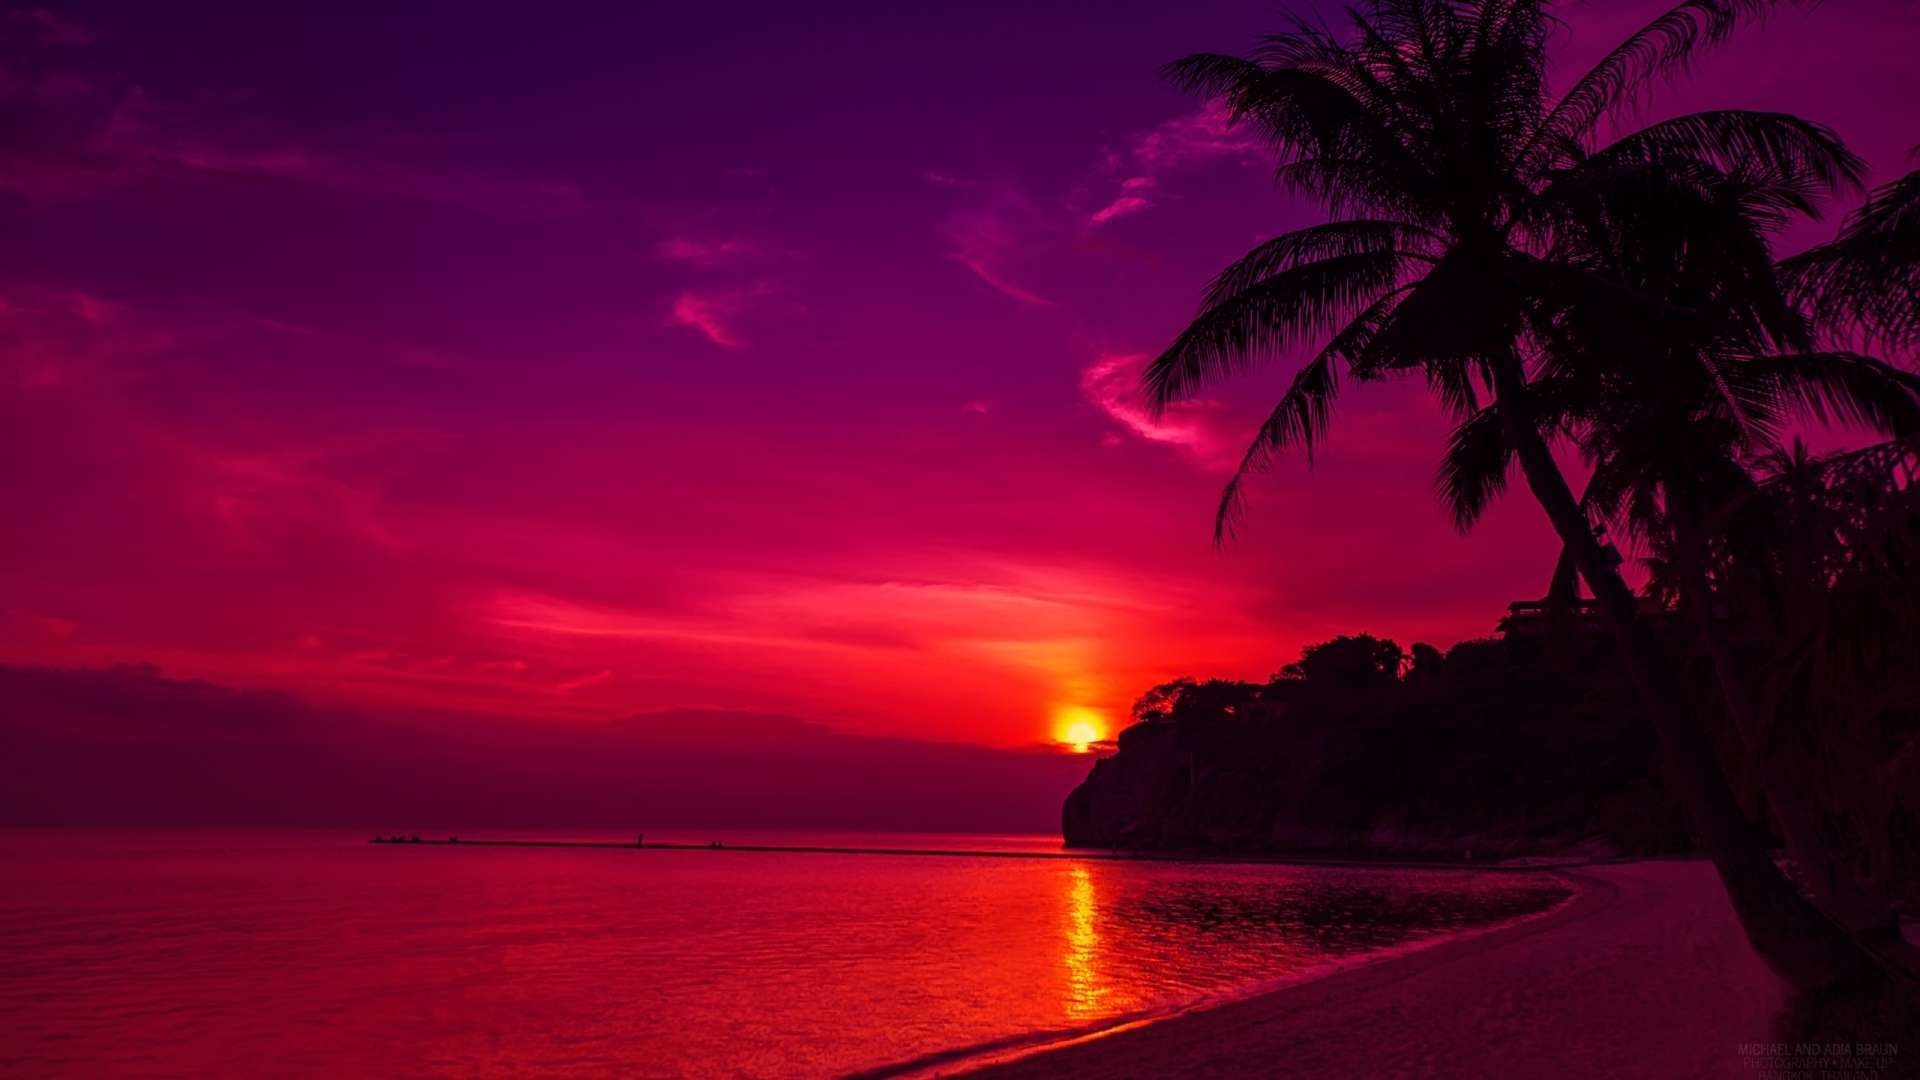 Beach hd wallpapers 1080p 68 images 1920x1200 tropical beach resorts hd wide wallpaper for widescreen voltagebd Choice Image